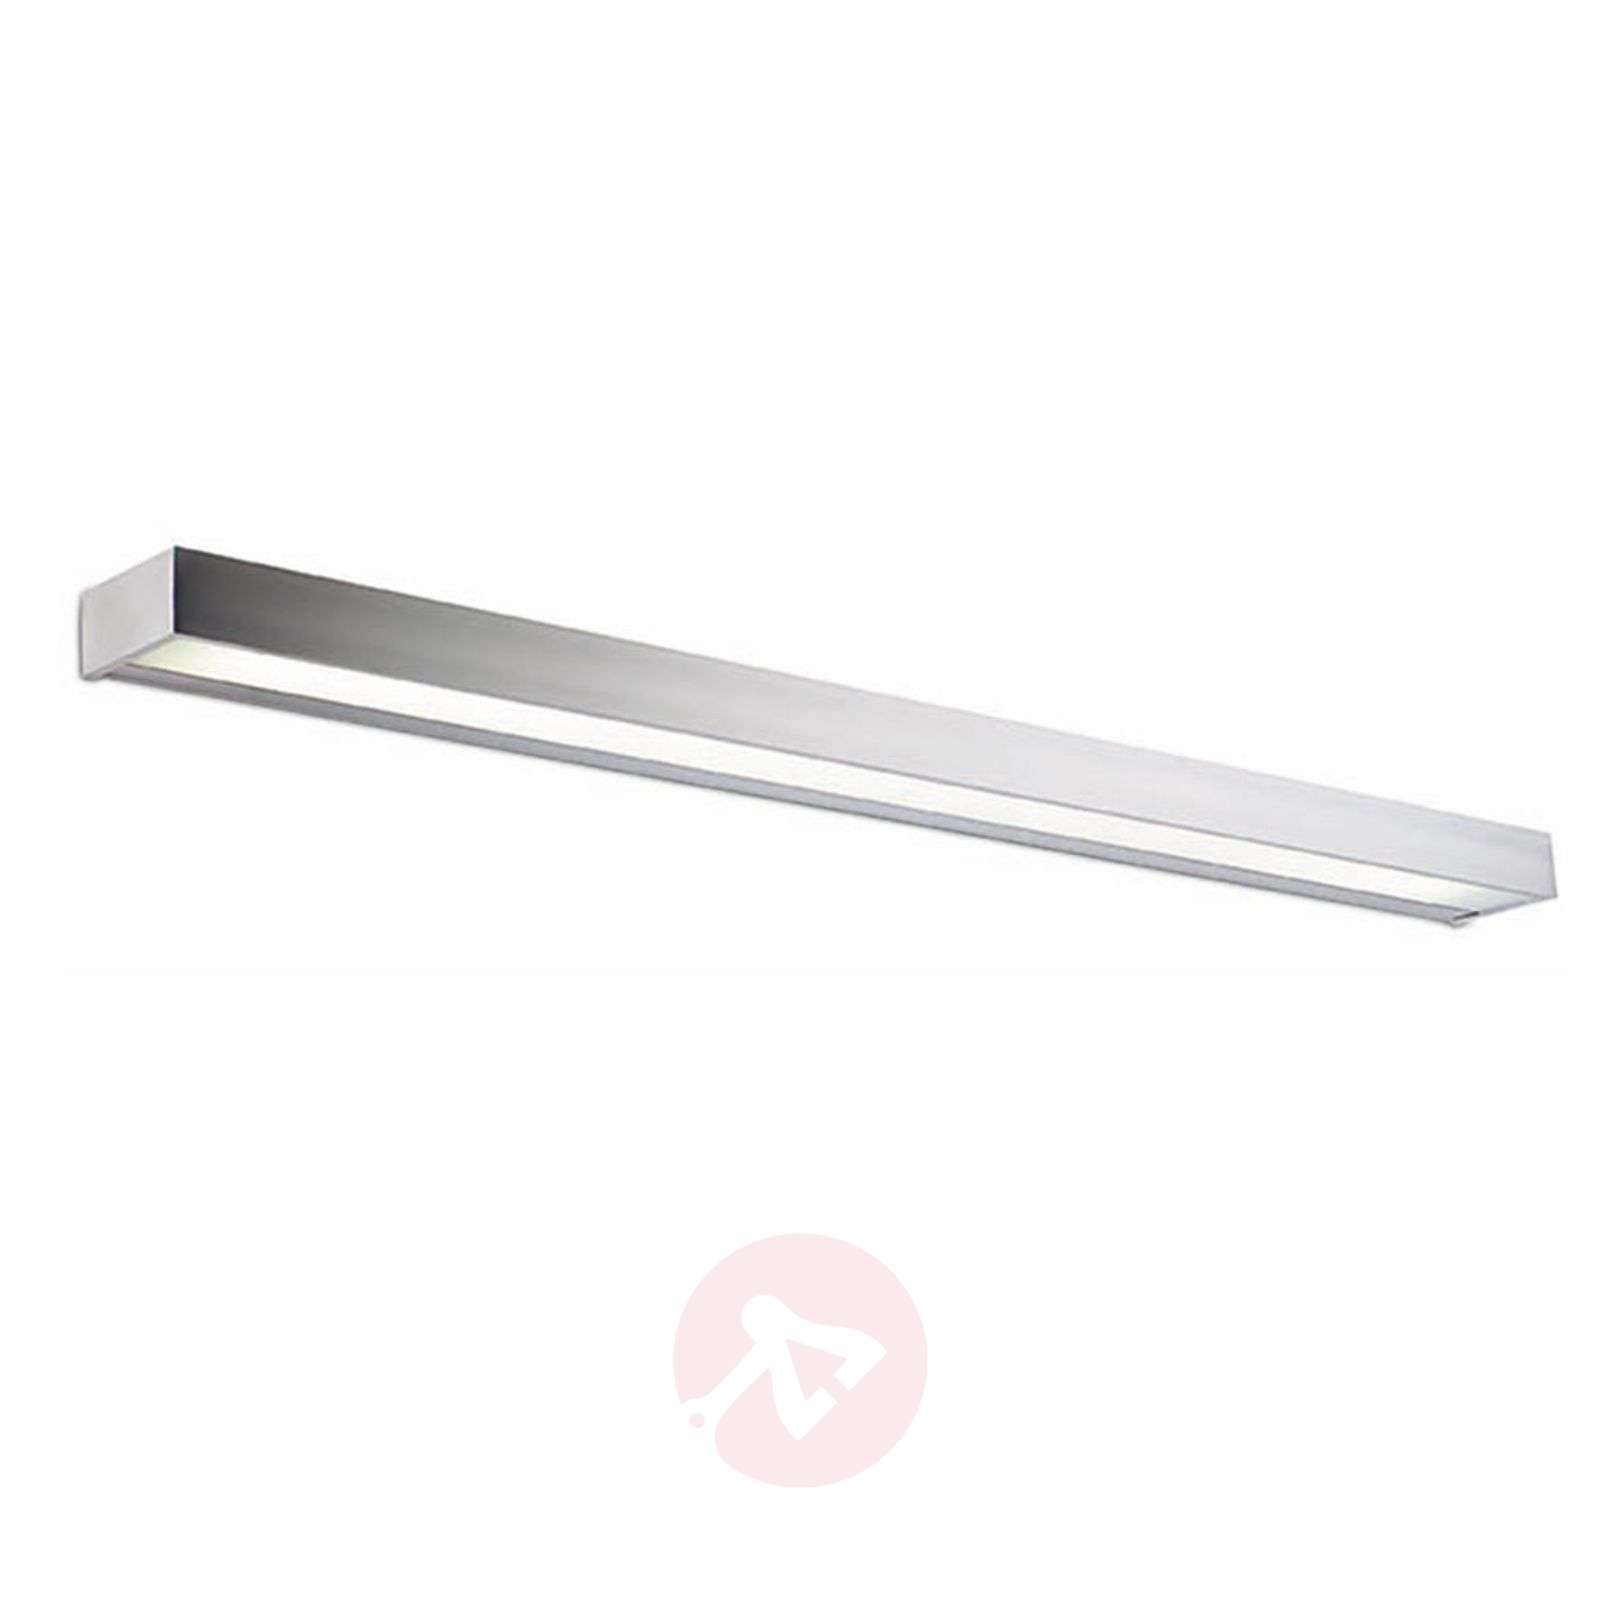 Verraton LED-seinävalaisin Apolo-7585230X-01